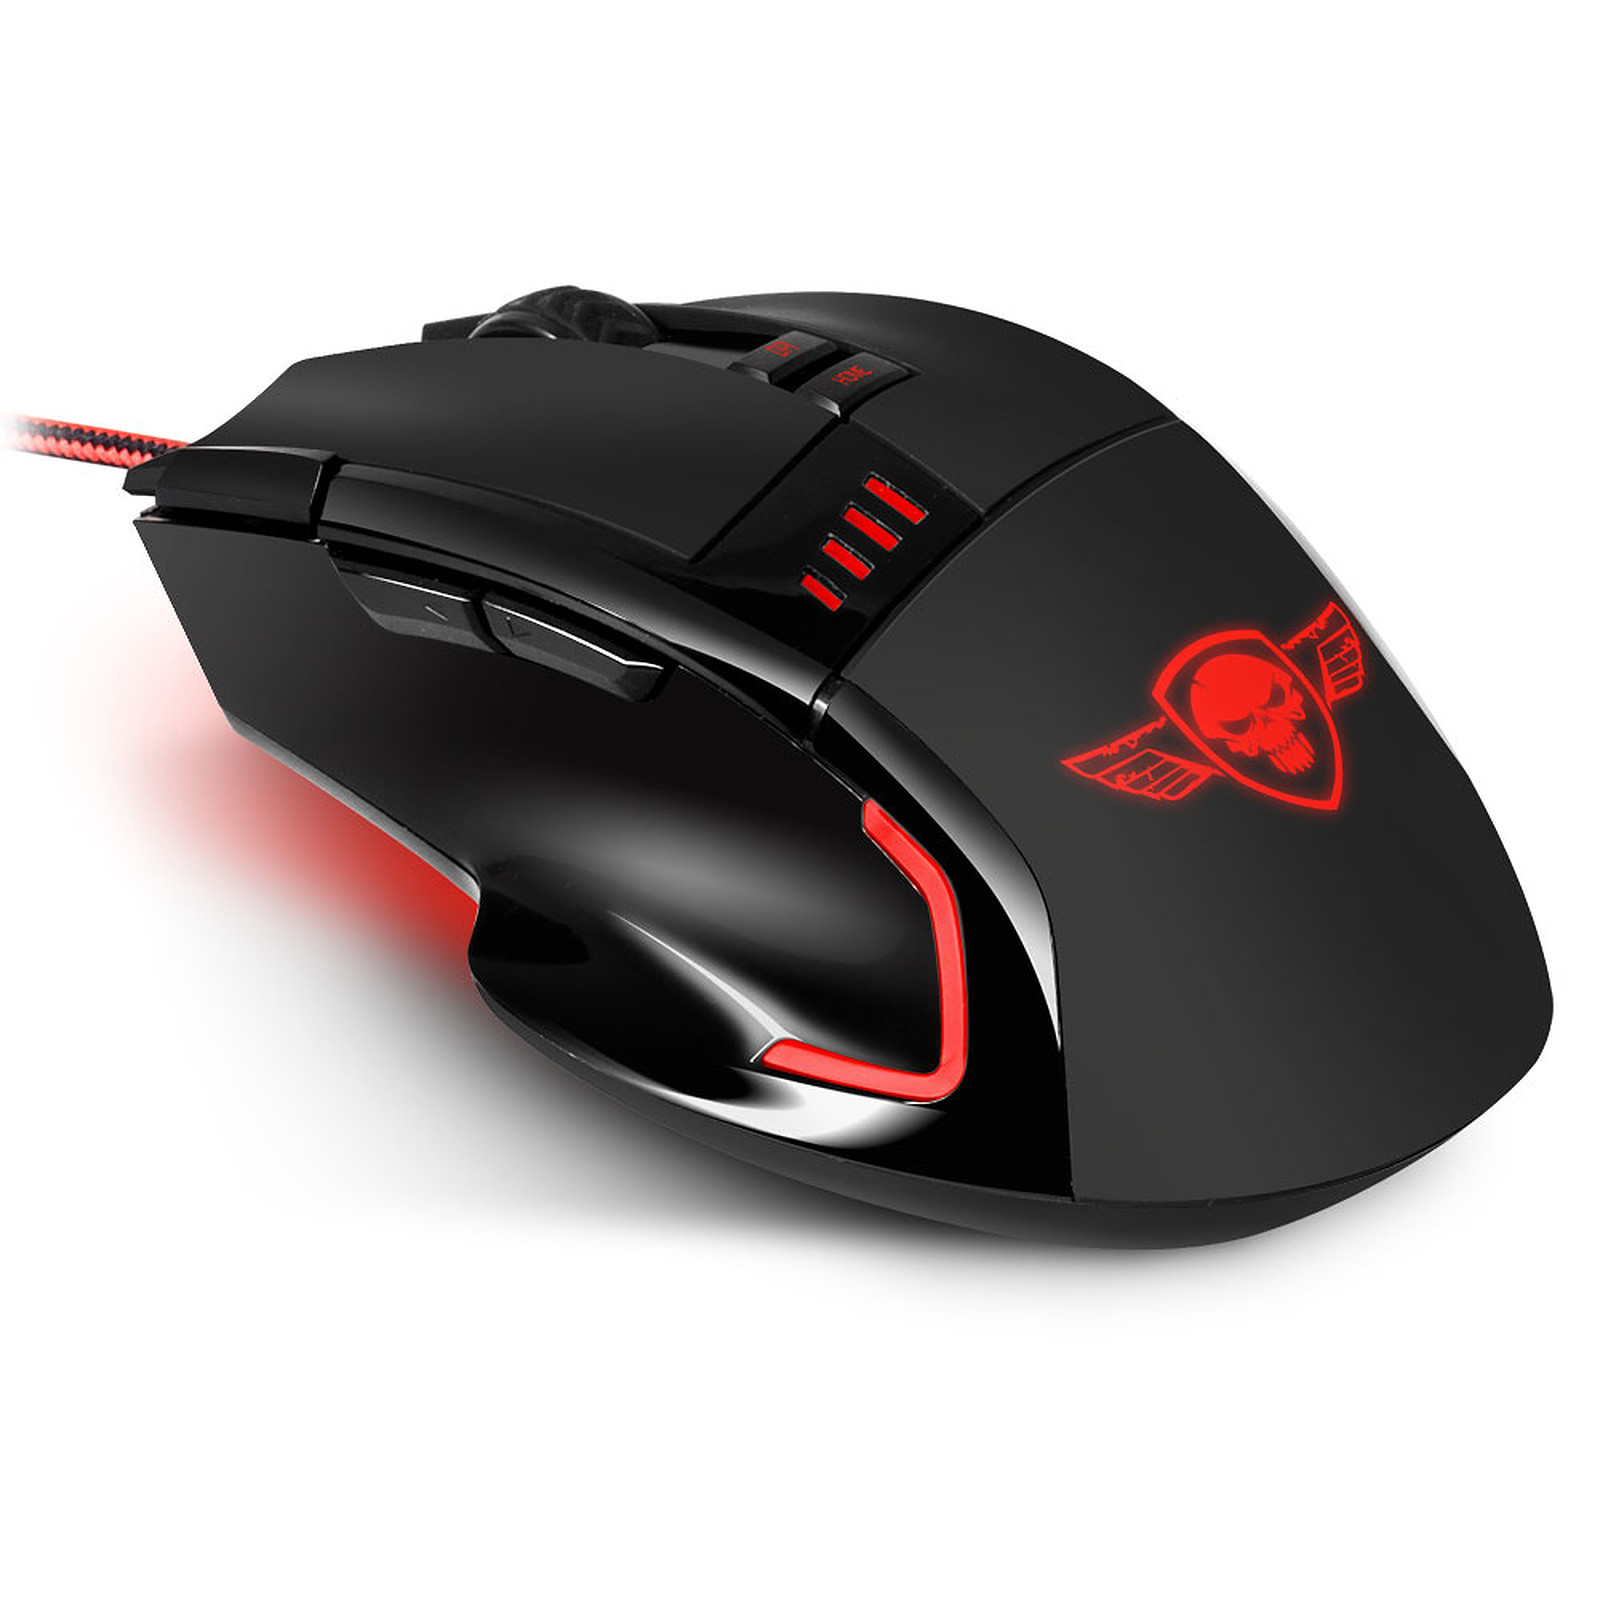 Souris Advance Spirit of Gamer PRO-M5 (S-PM5), informatique Reunion, 974, Futur Réunion